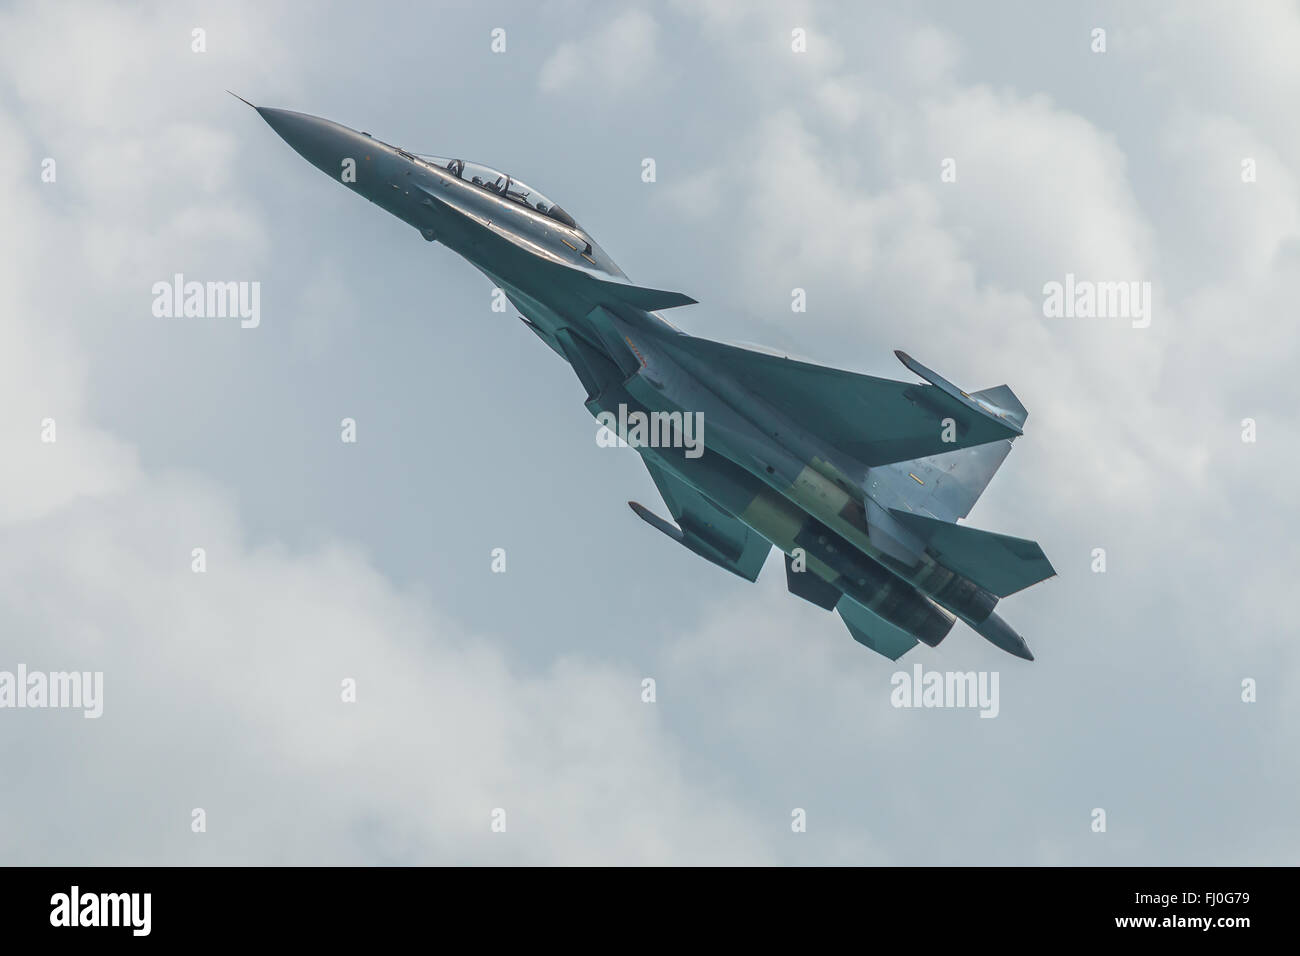 Royal Malaysian Airforce Su-30 at the Singapore Airshow 2016 - Stock Image